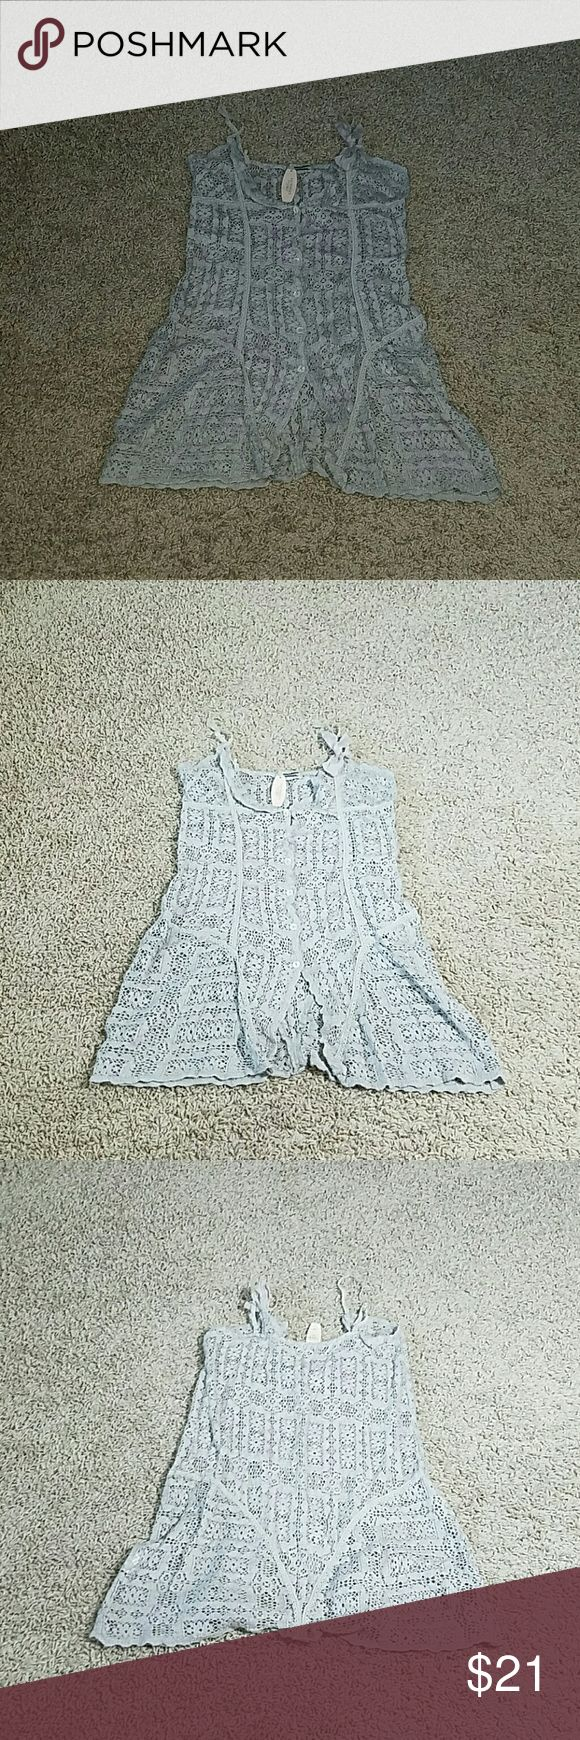 VICTORIA'S SECRET Top Gray Victoria's secret Elise Aucouturier knit spaghetti straps top. size L    Subject to wear, tear and/or flaws due to used items and unknown history. Victoria's Secret Tops Tank Tops